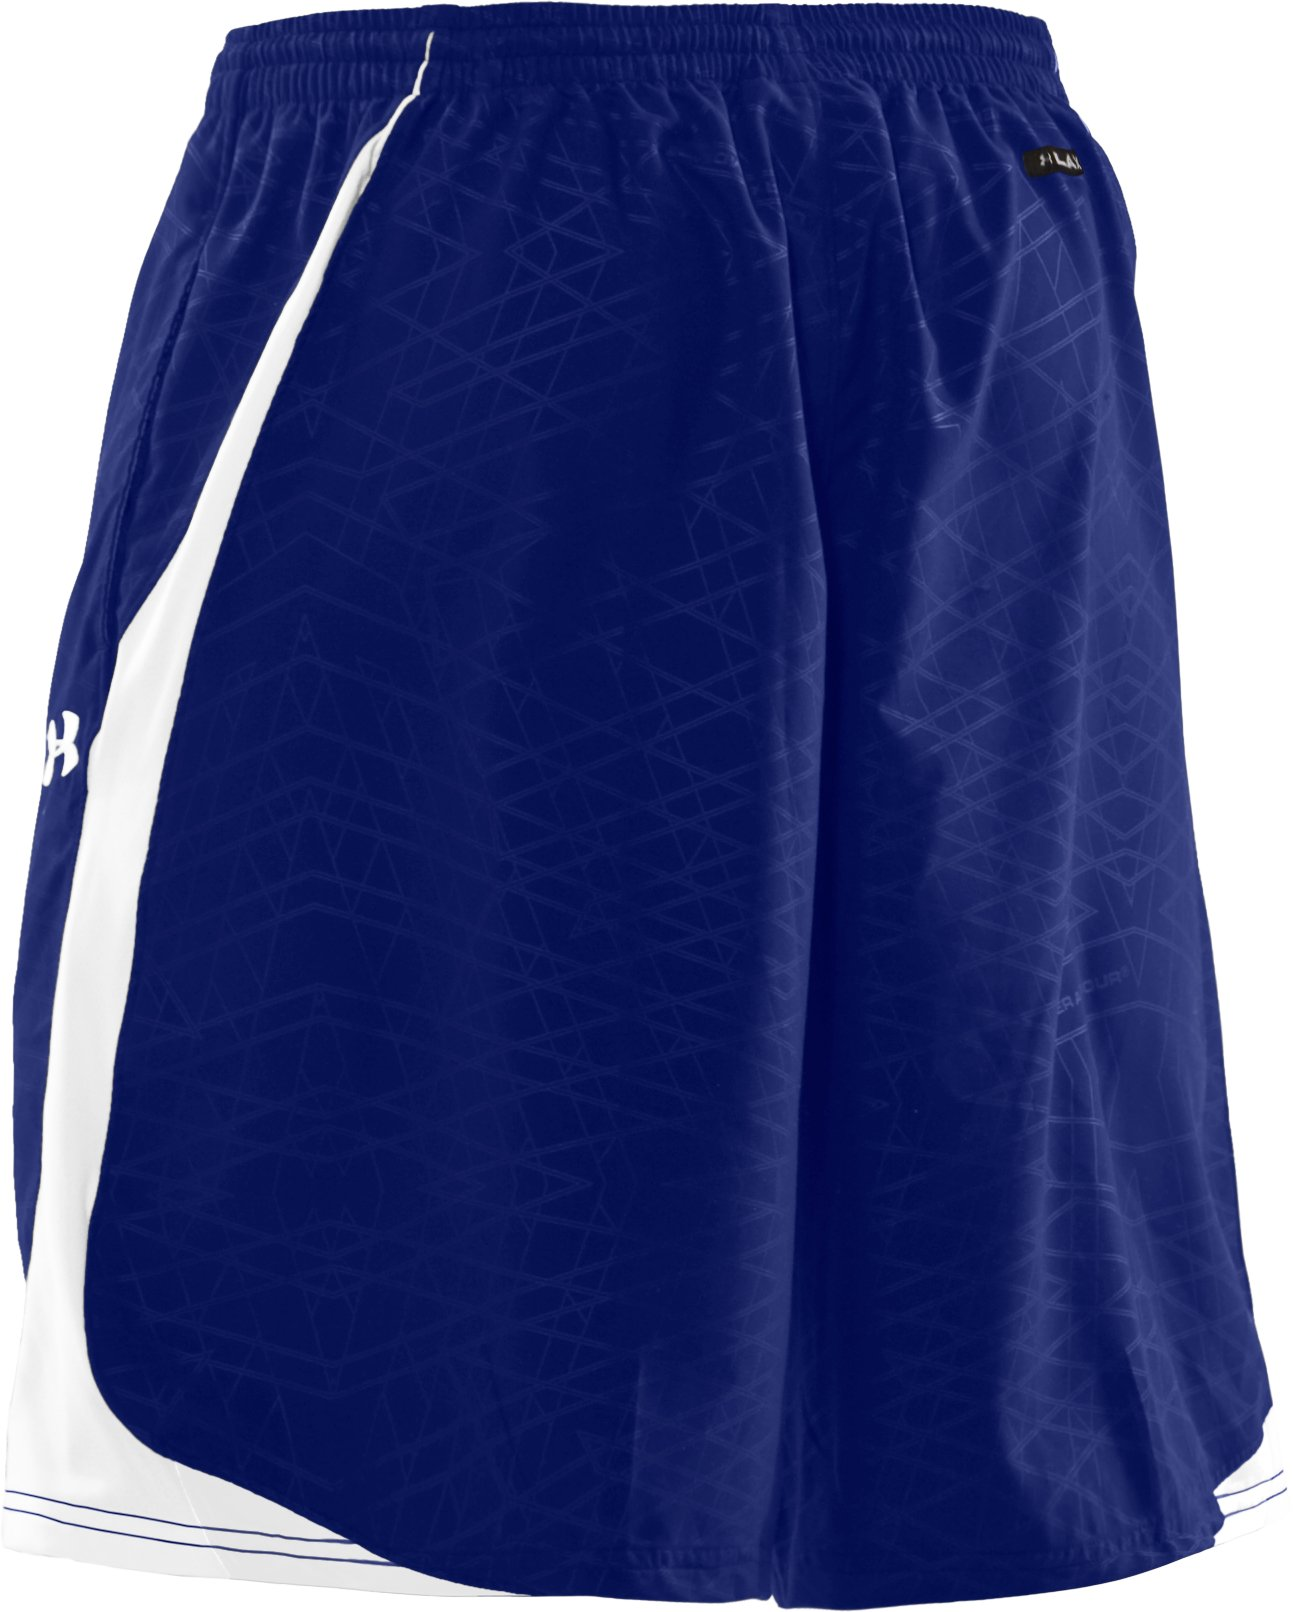 Men's UA Unity Shorts, Royal